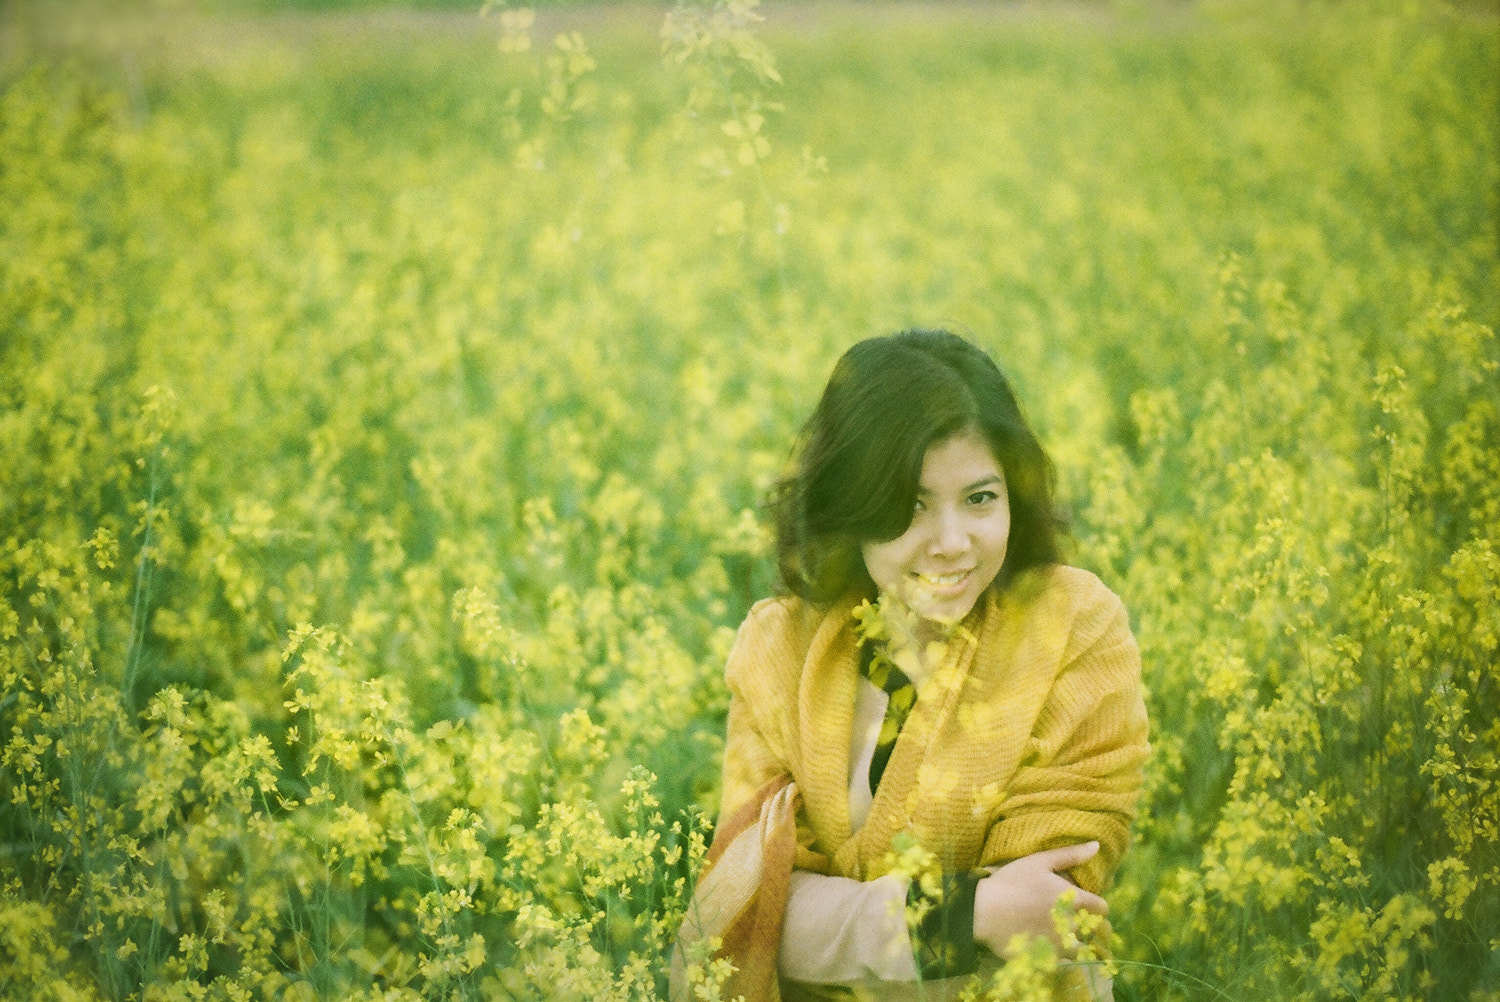 Photograph Untitled by viethungdo_kts on 500px